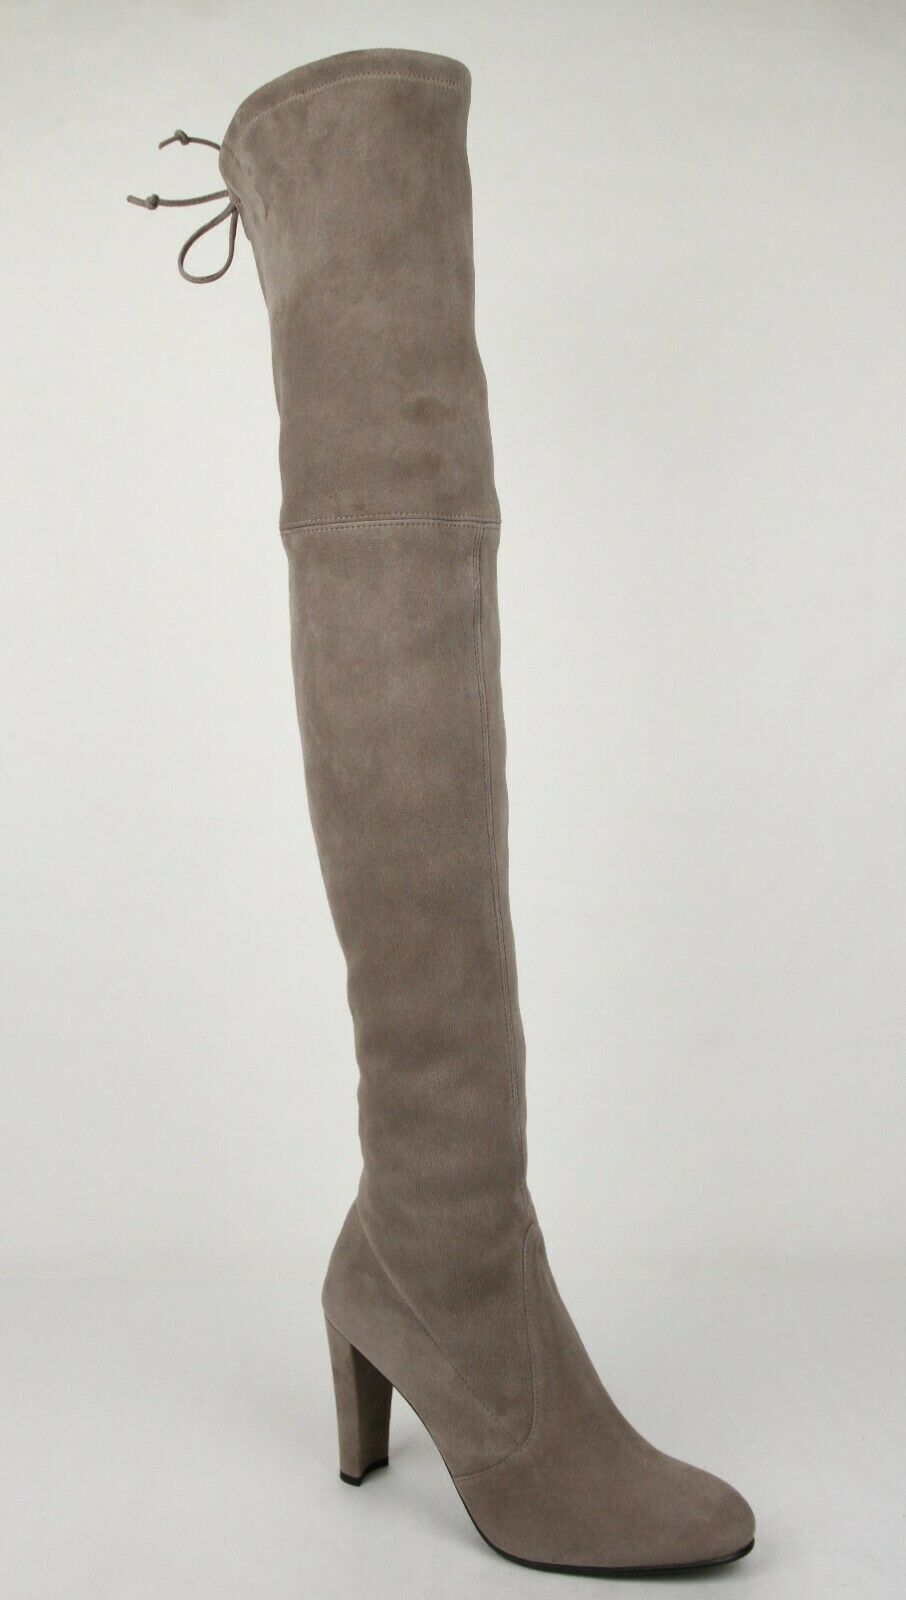 798 New Stuart Weitzman Women's Highland Taupe Suede Over-The-Knee Boots